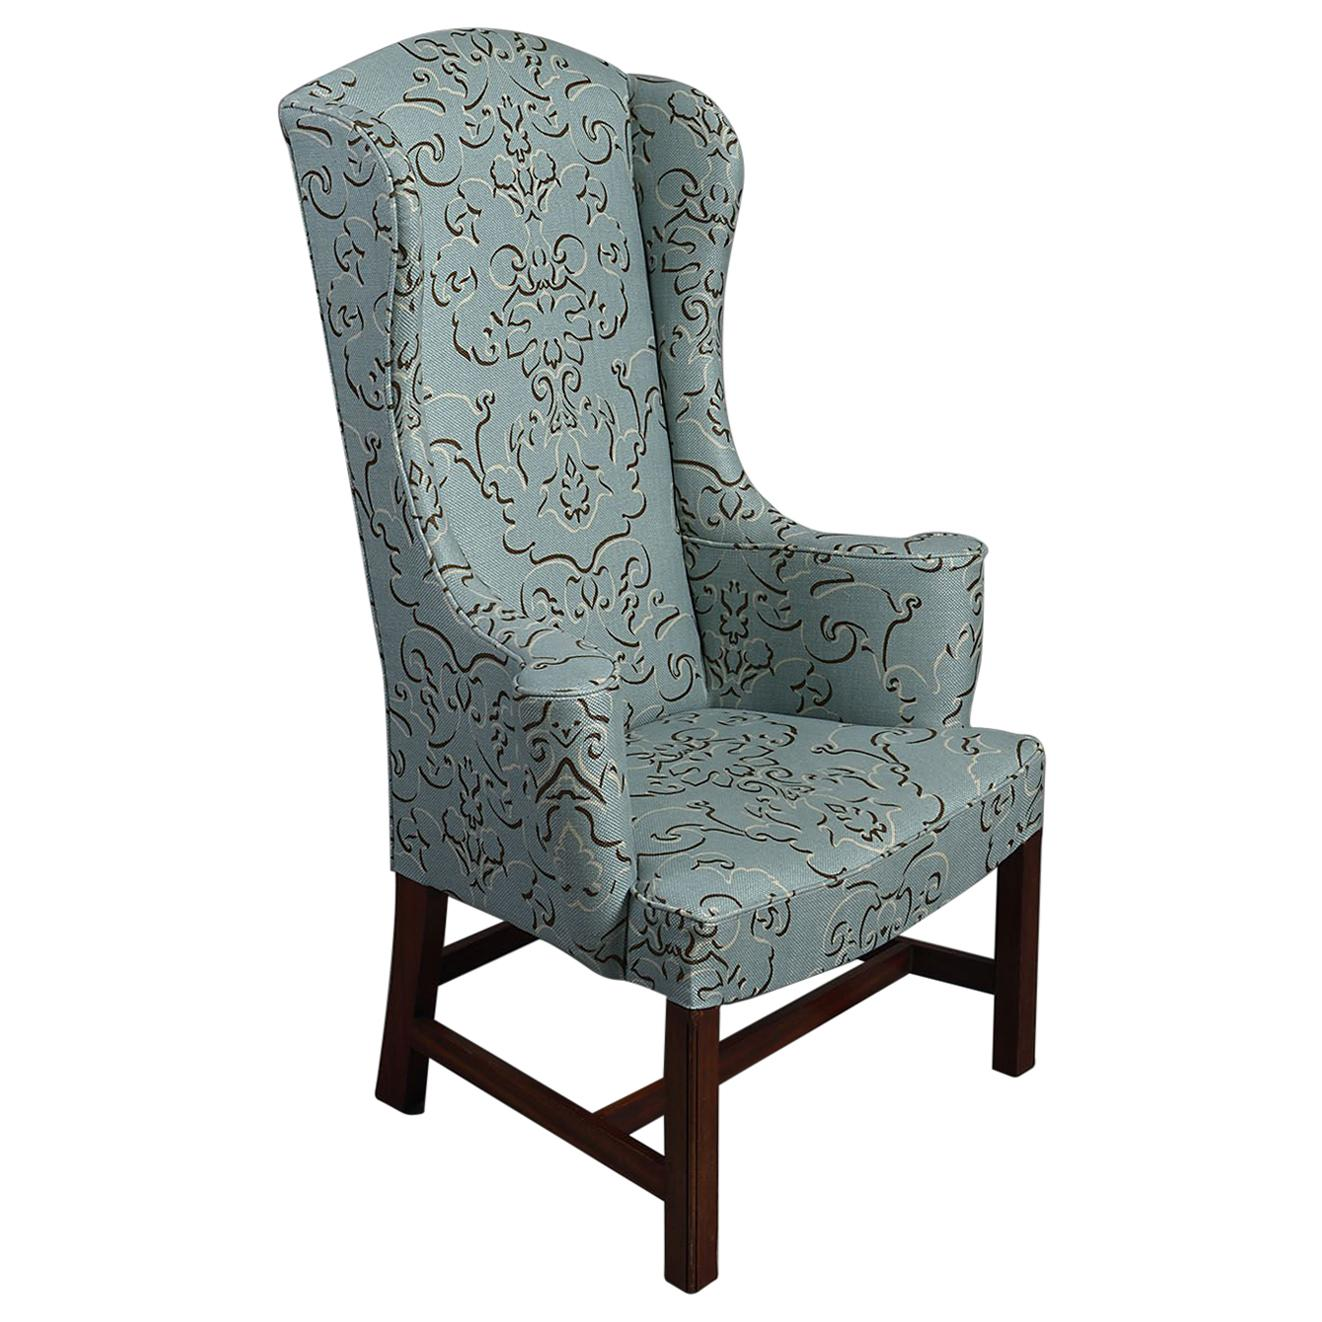 George III Style Teal High Wingback Armchair For Sale